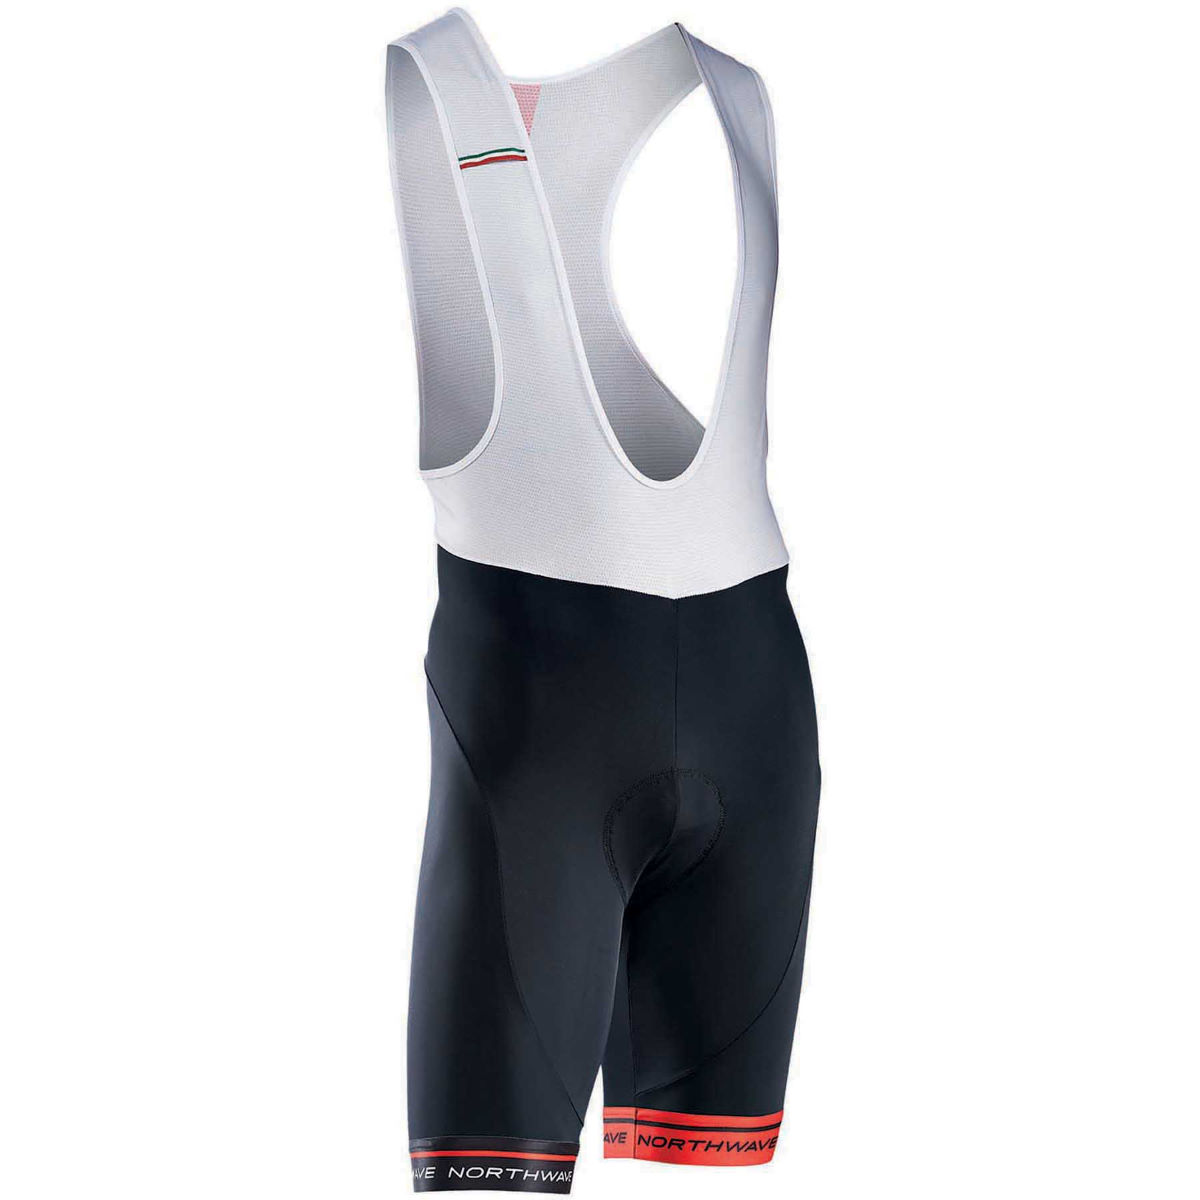 Northwave Kids Logo 3 Bib Shorts - 5-6 years Noir/Rouge Cuissards en lycra